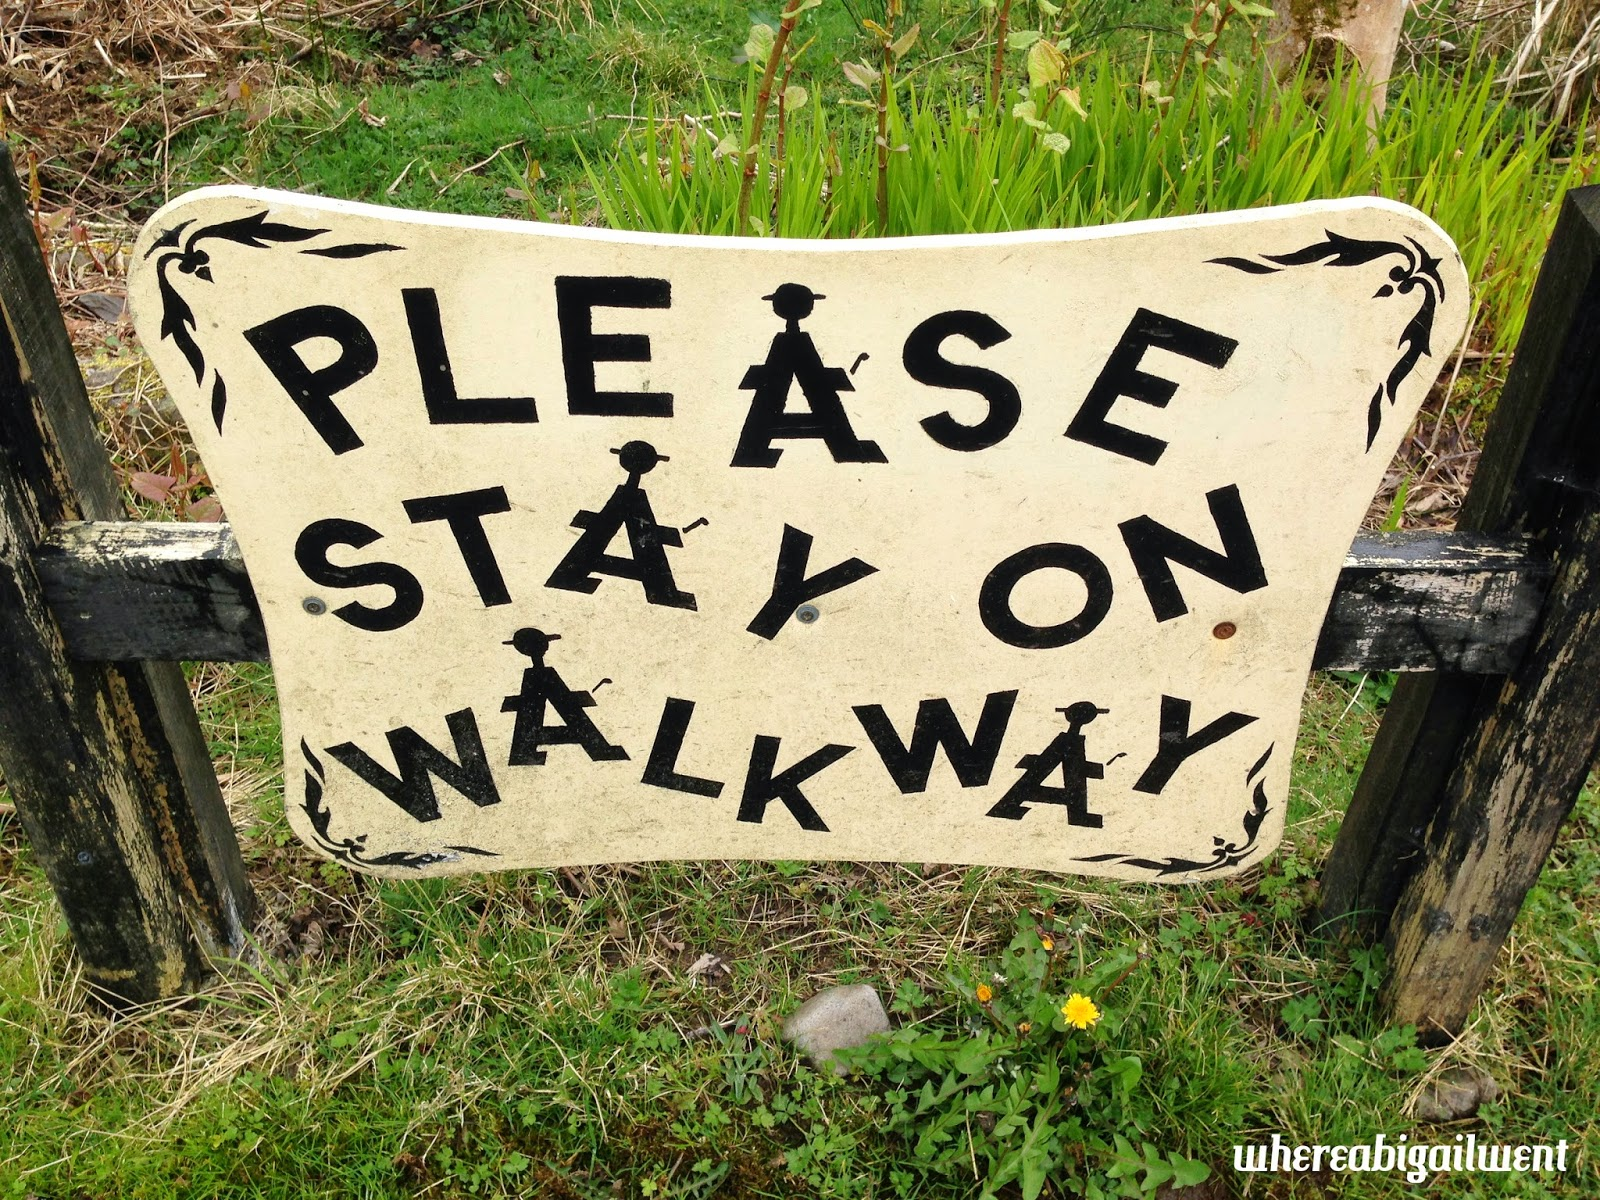 Please Stay on Walkway